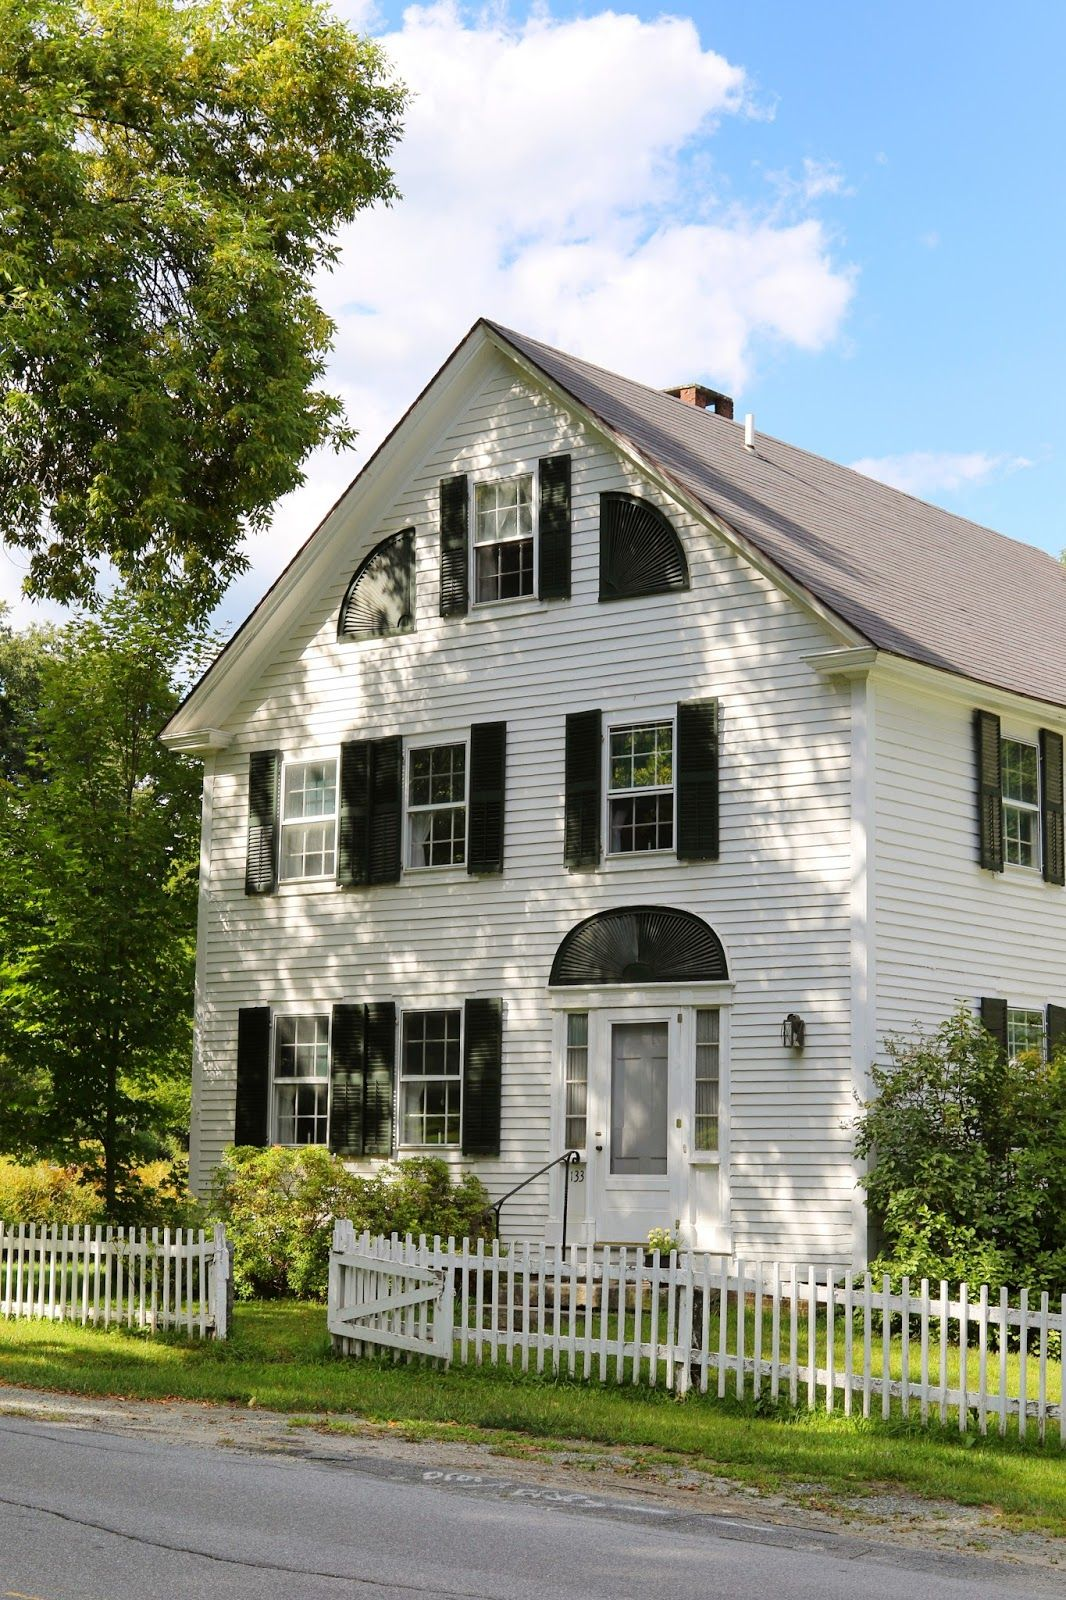 New England Village Getaway New England Homes New England Architecture